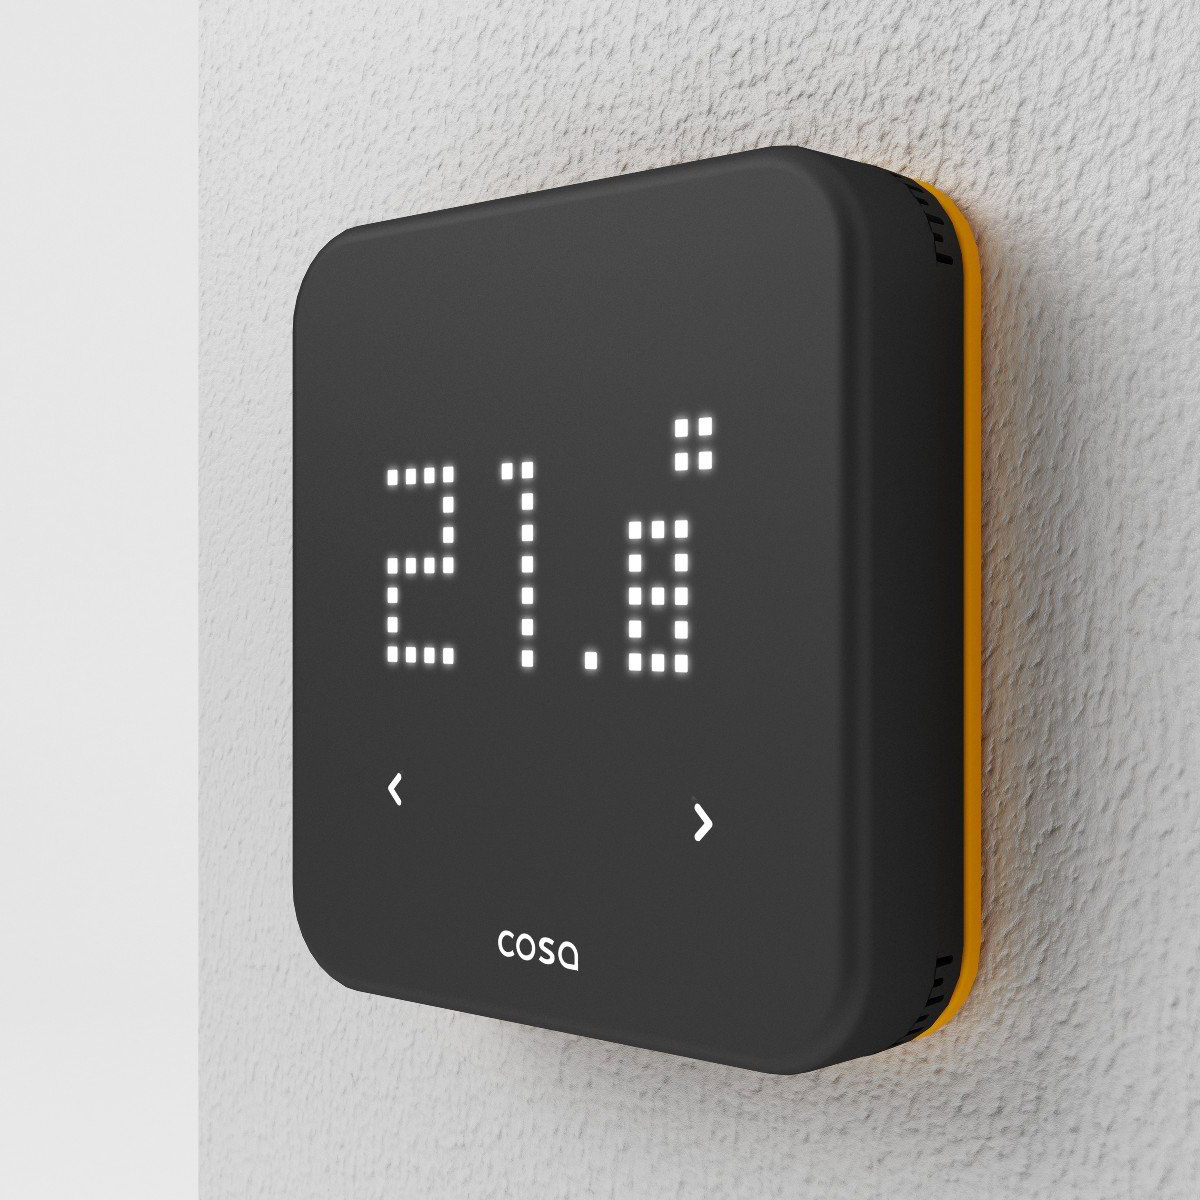 Cosa Smart Thermostat